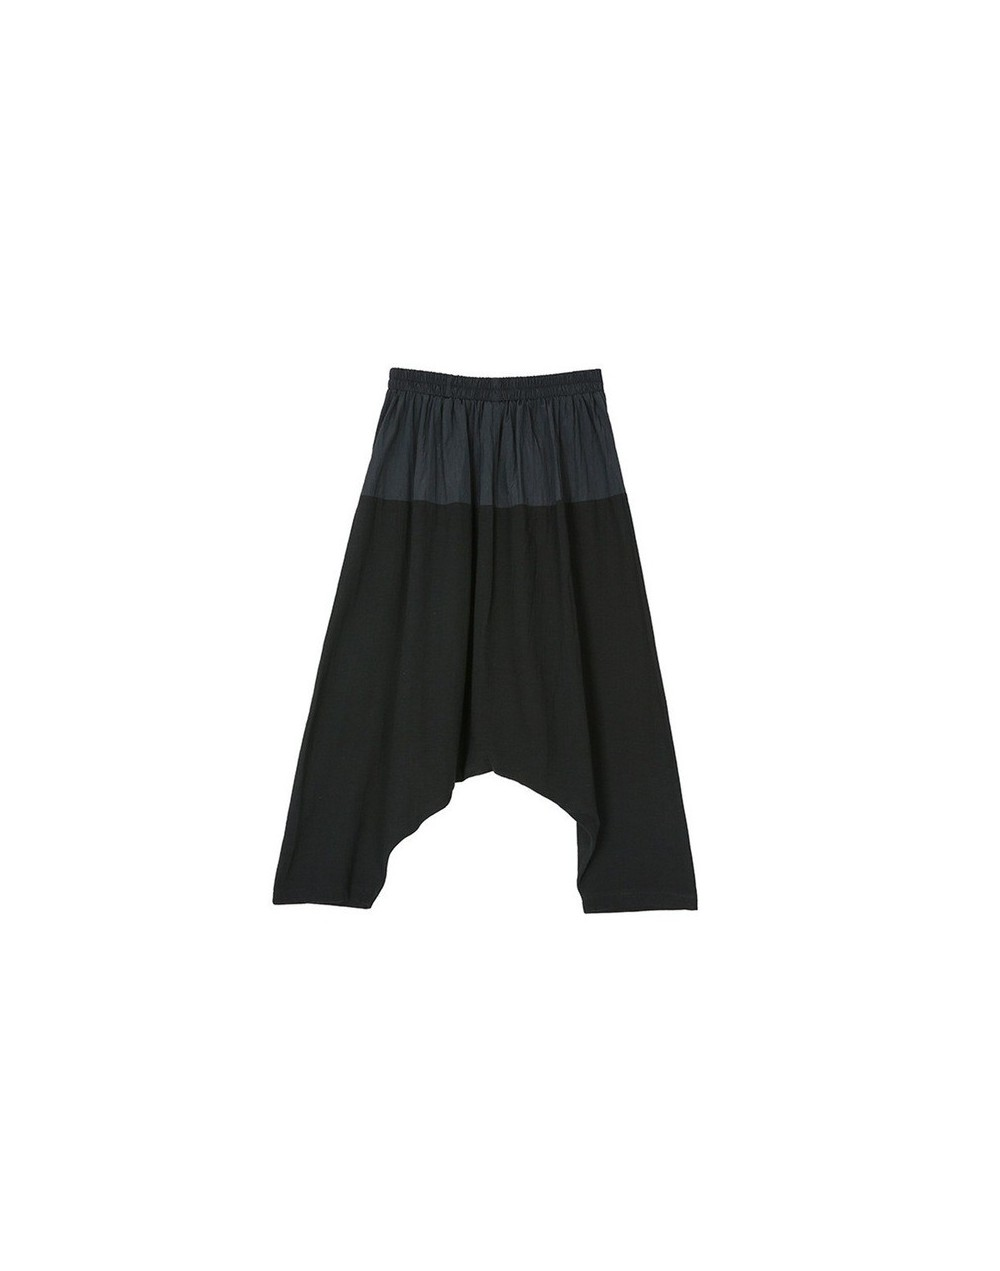 Spring Pacthwork Hit Color Women Pant Elastic Waist Mid Front Pleated Female Ankle-length Harem Pants Women's Clothing - bla...